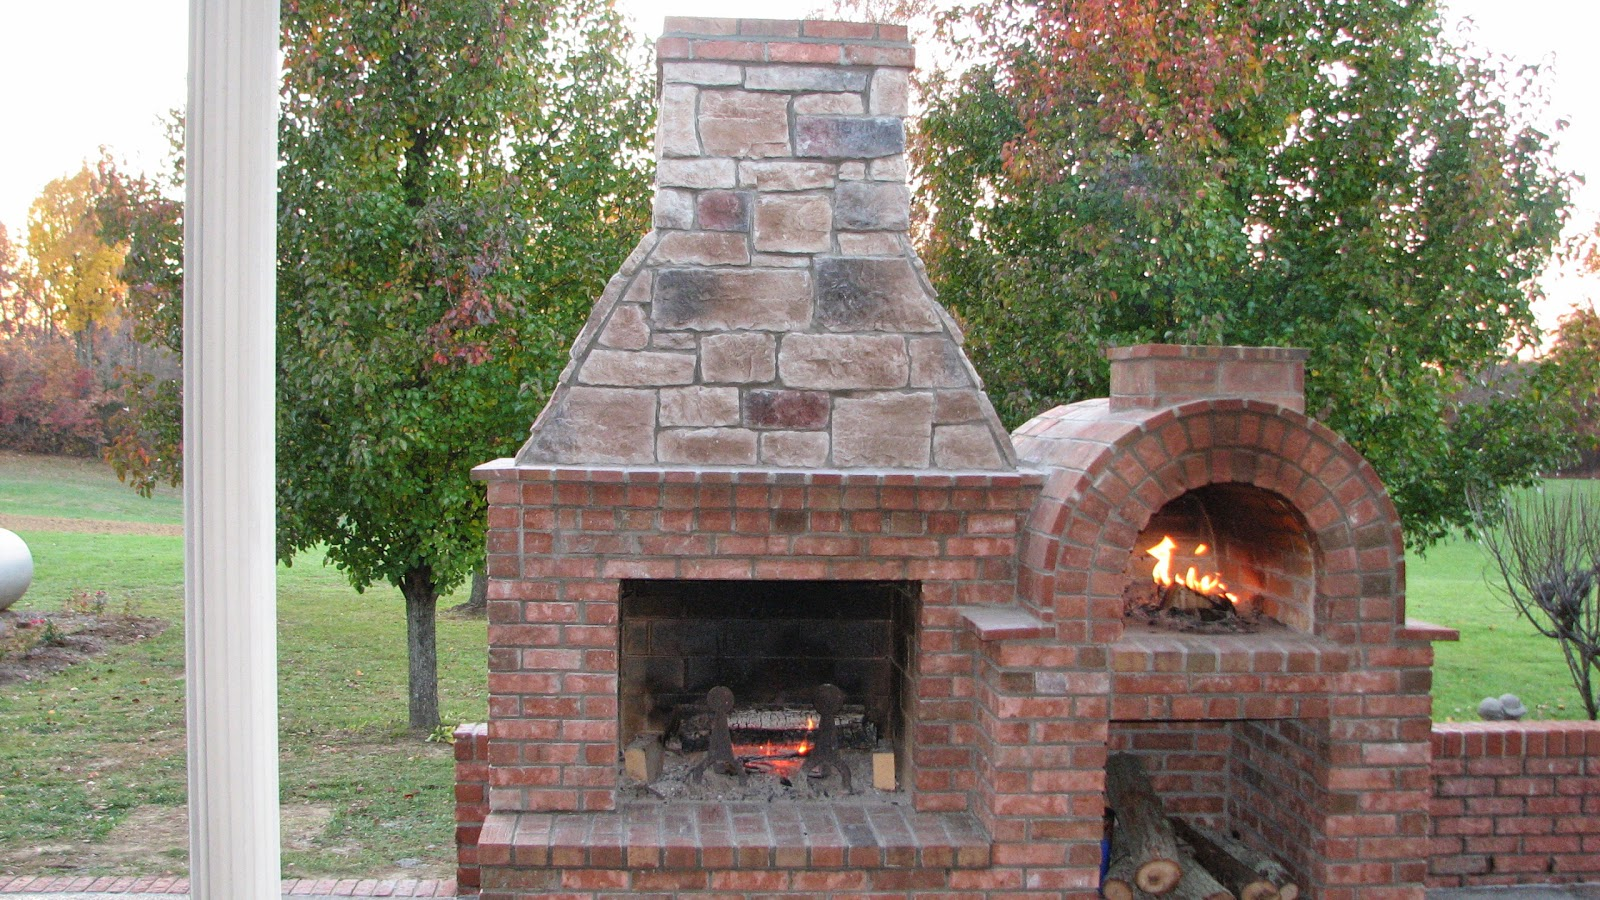 Outdoor brick fireplace with oven fireplace design ideas for Outside fireplace plans